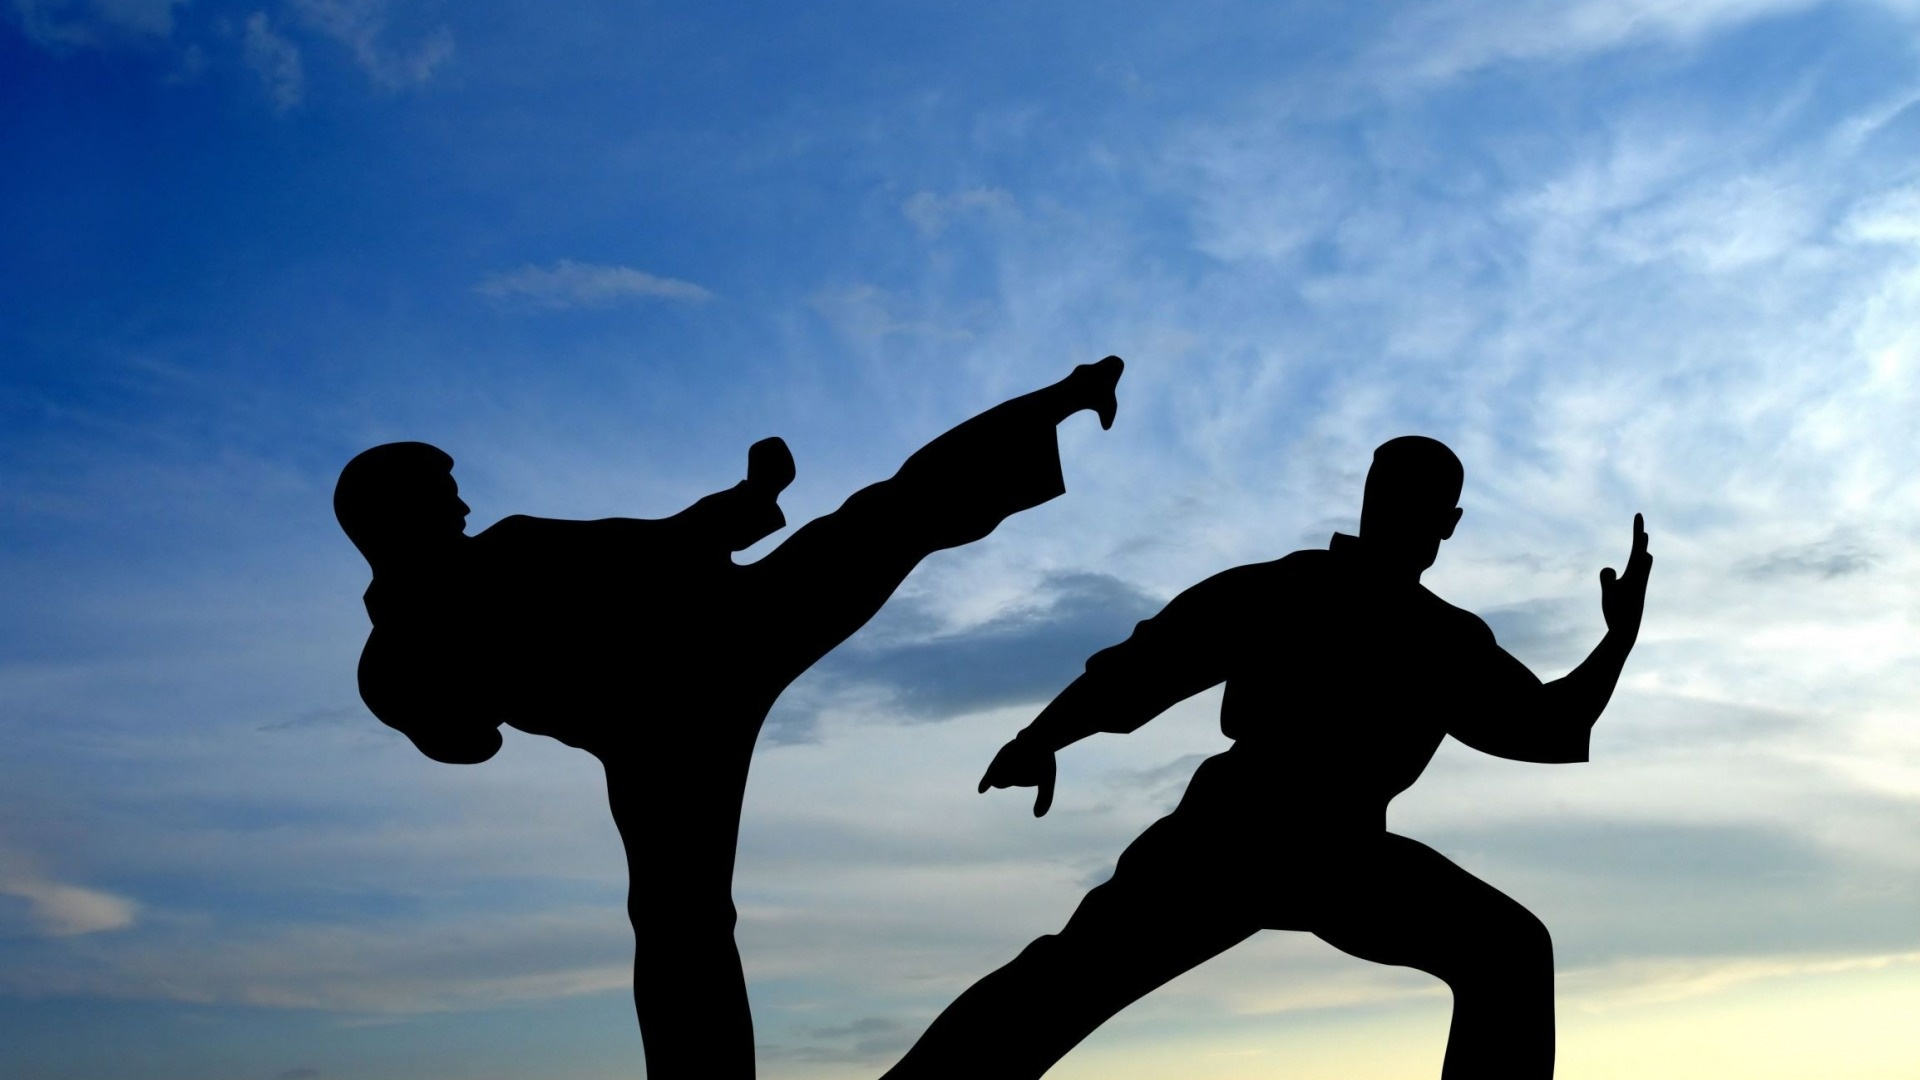 karate wallpaper hd full hd pictures